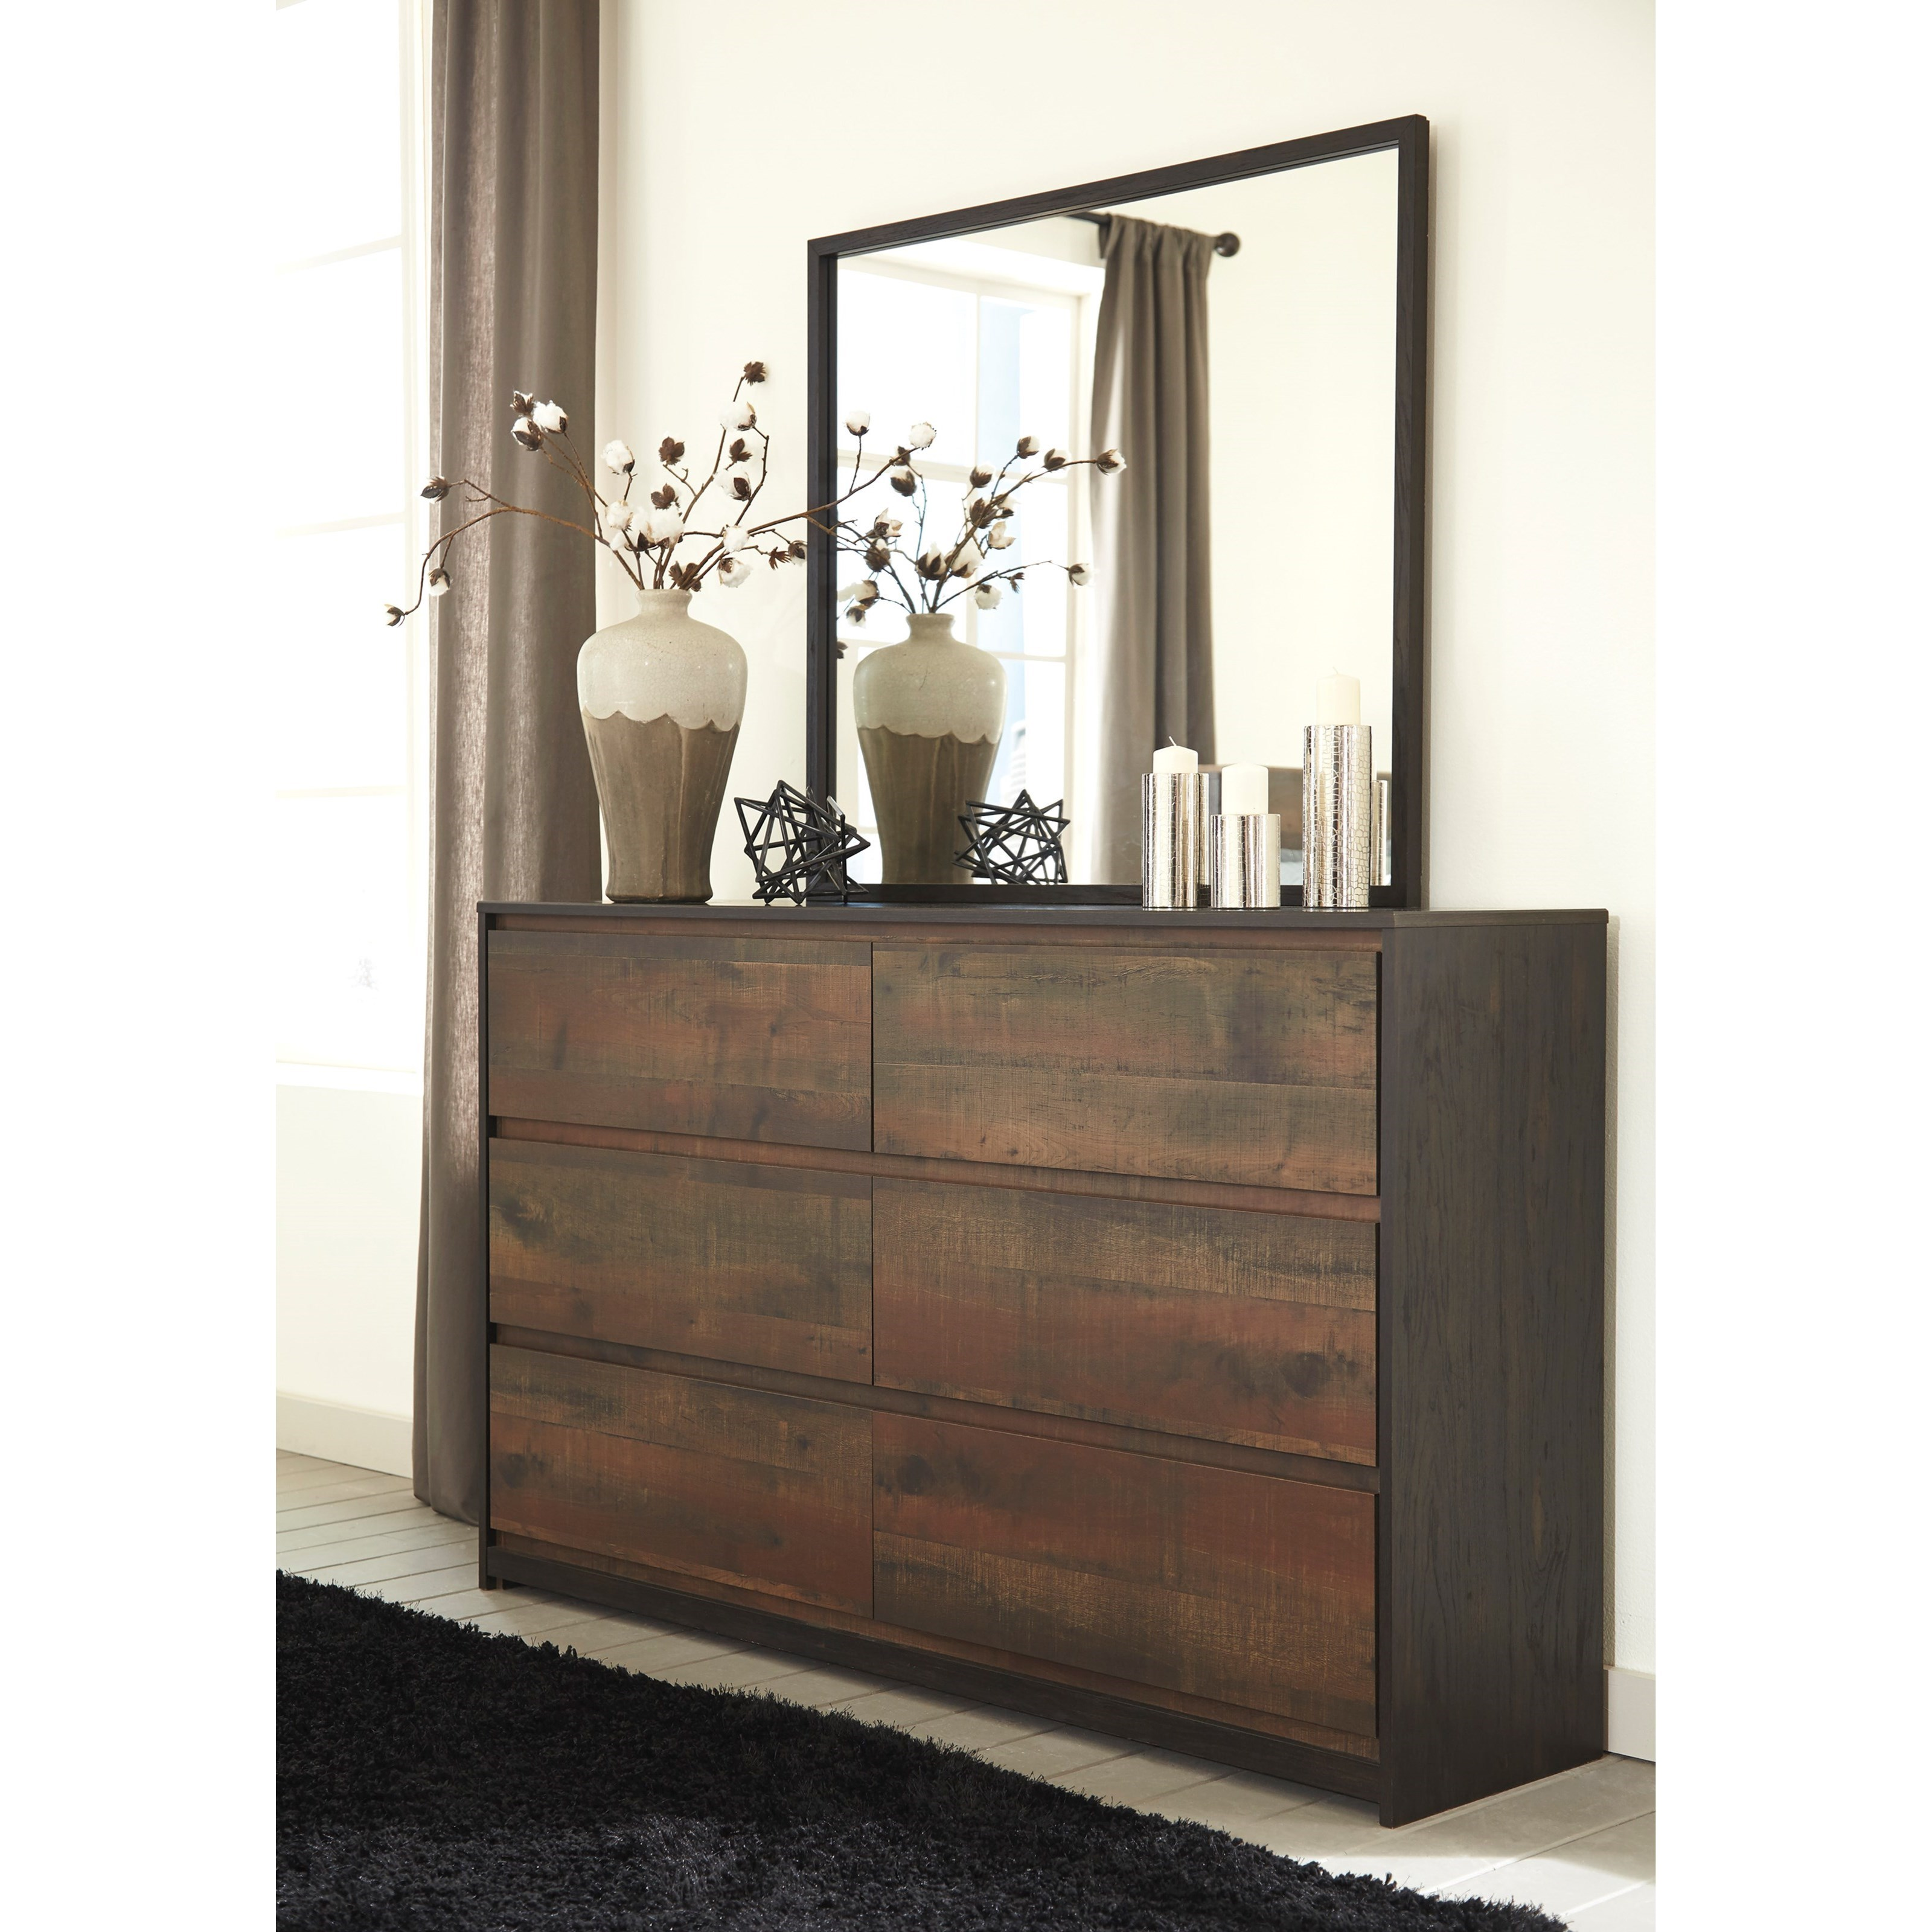 Bedroom Dressers With Mirrors: Signature Design By Ashley Windlore Modern Rustic Dresser